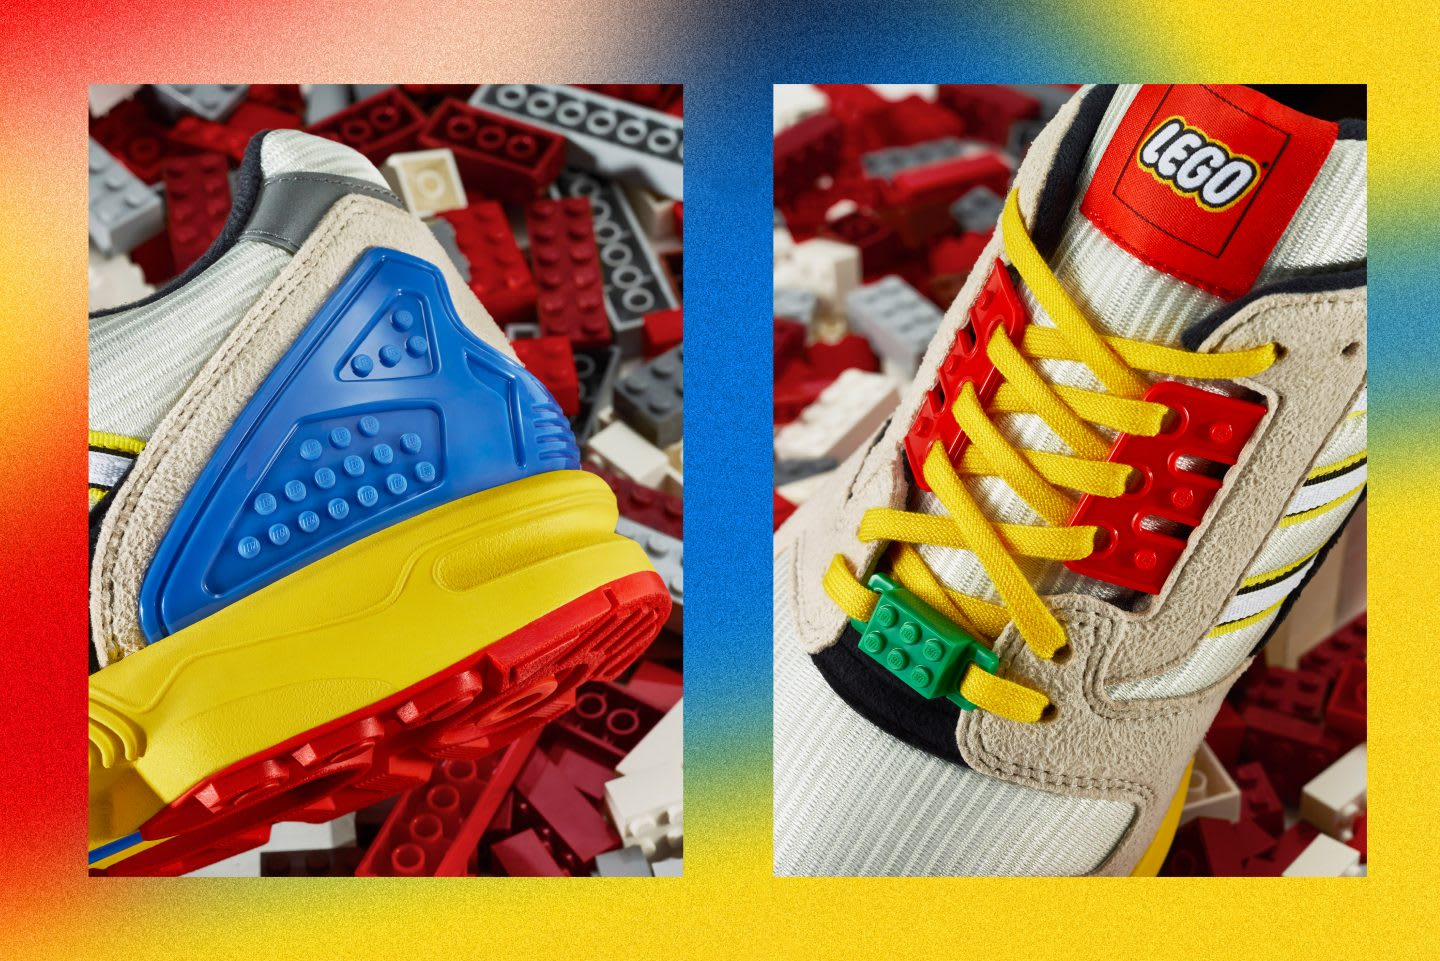 Shoes with primary colors on top of Lego toy bricks, adidas, LEGO partnership, collaboration ZX8000, shoes, Originals